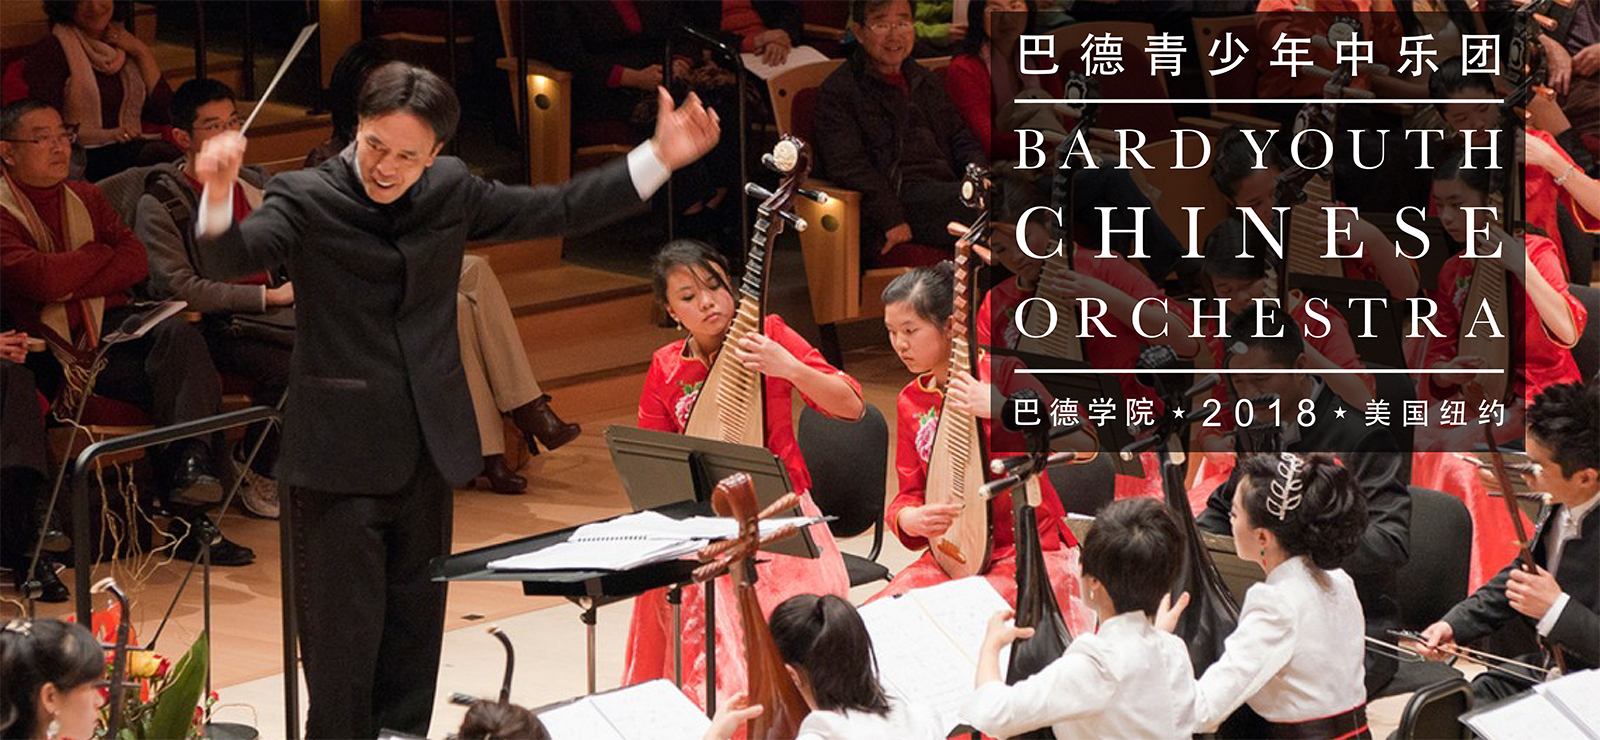 image for Bard Youth Chinese Orchestra